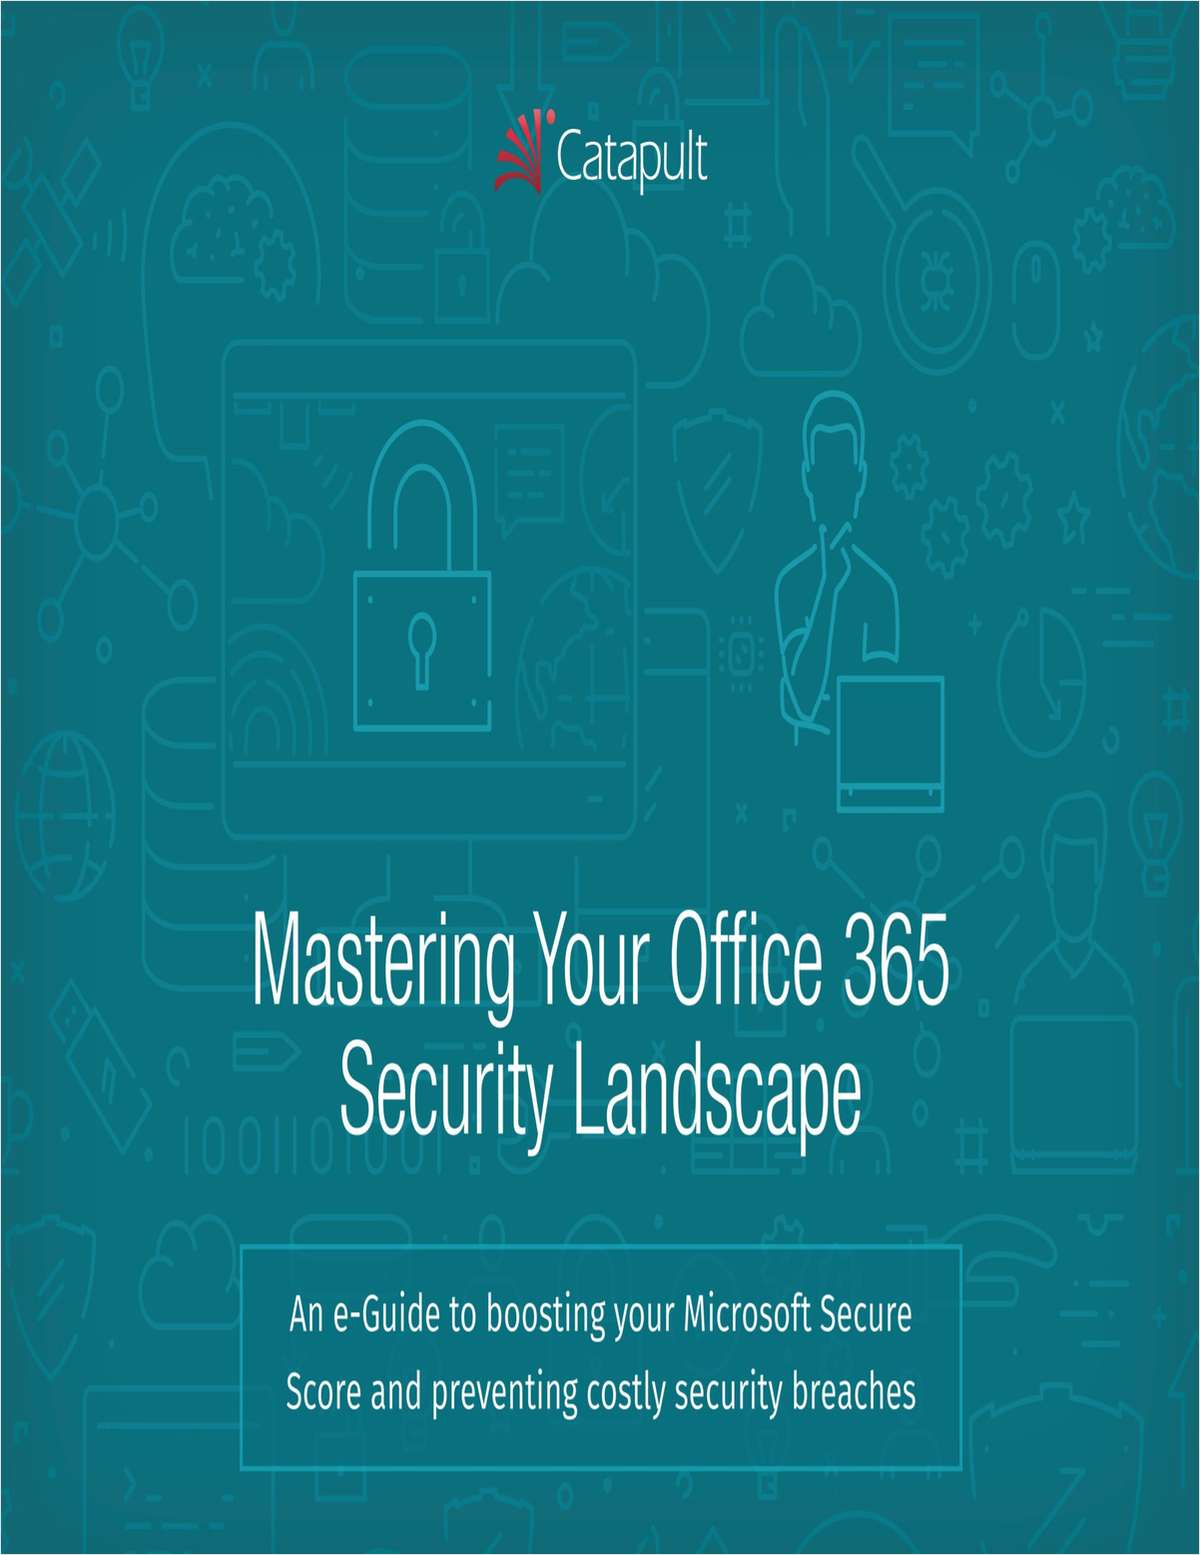 Master Your Office 365 Security Landscape